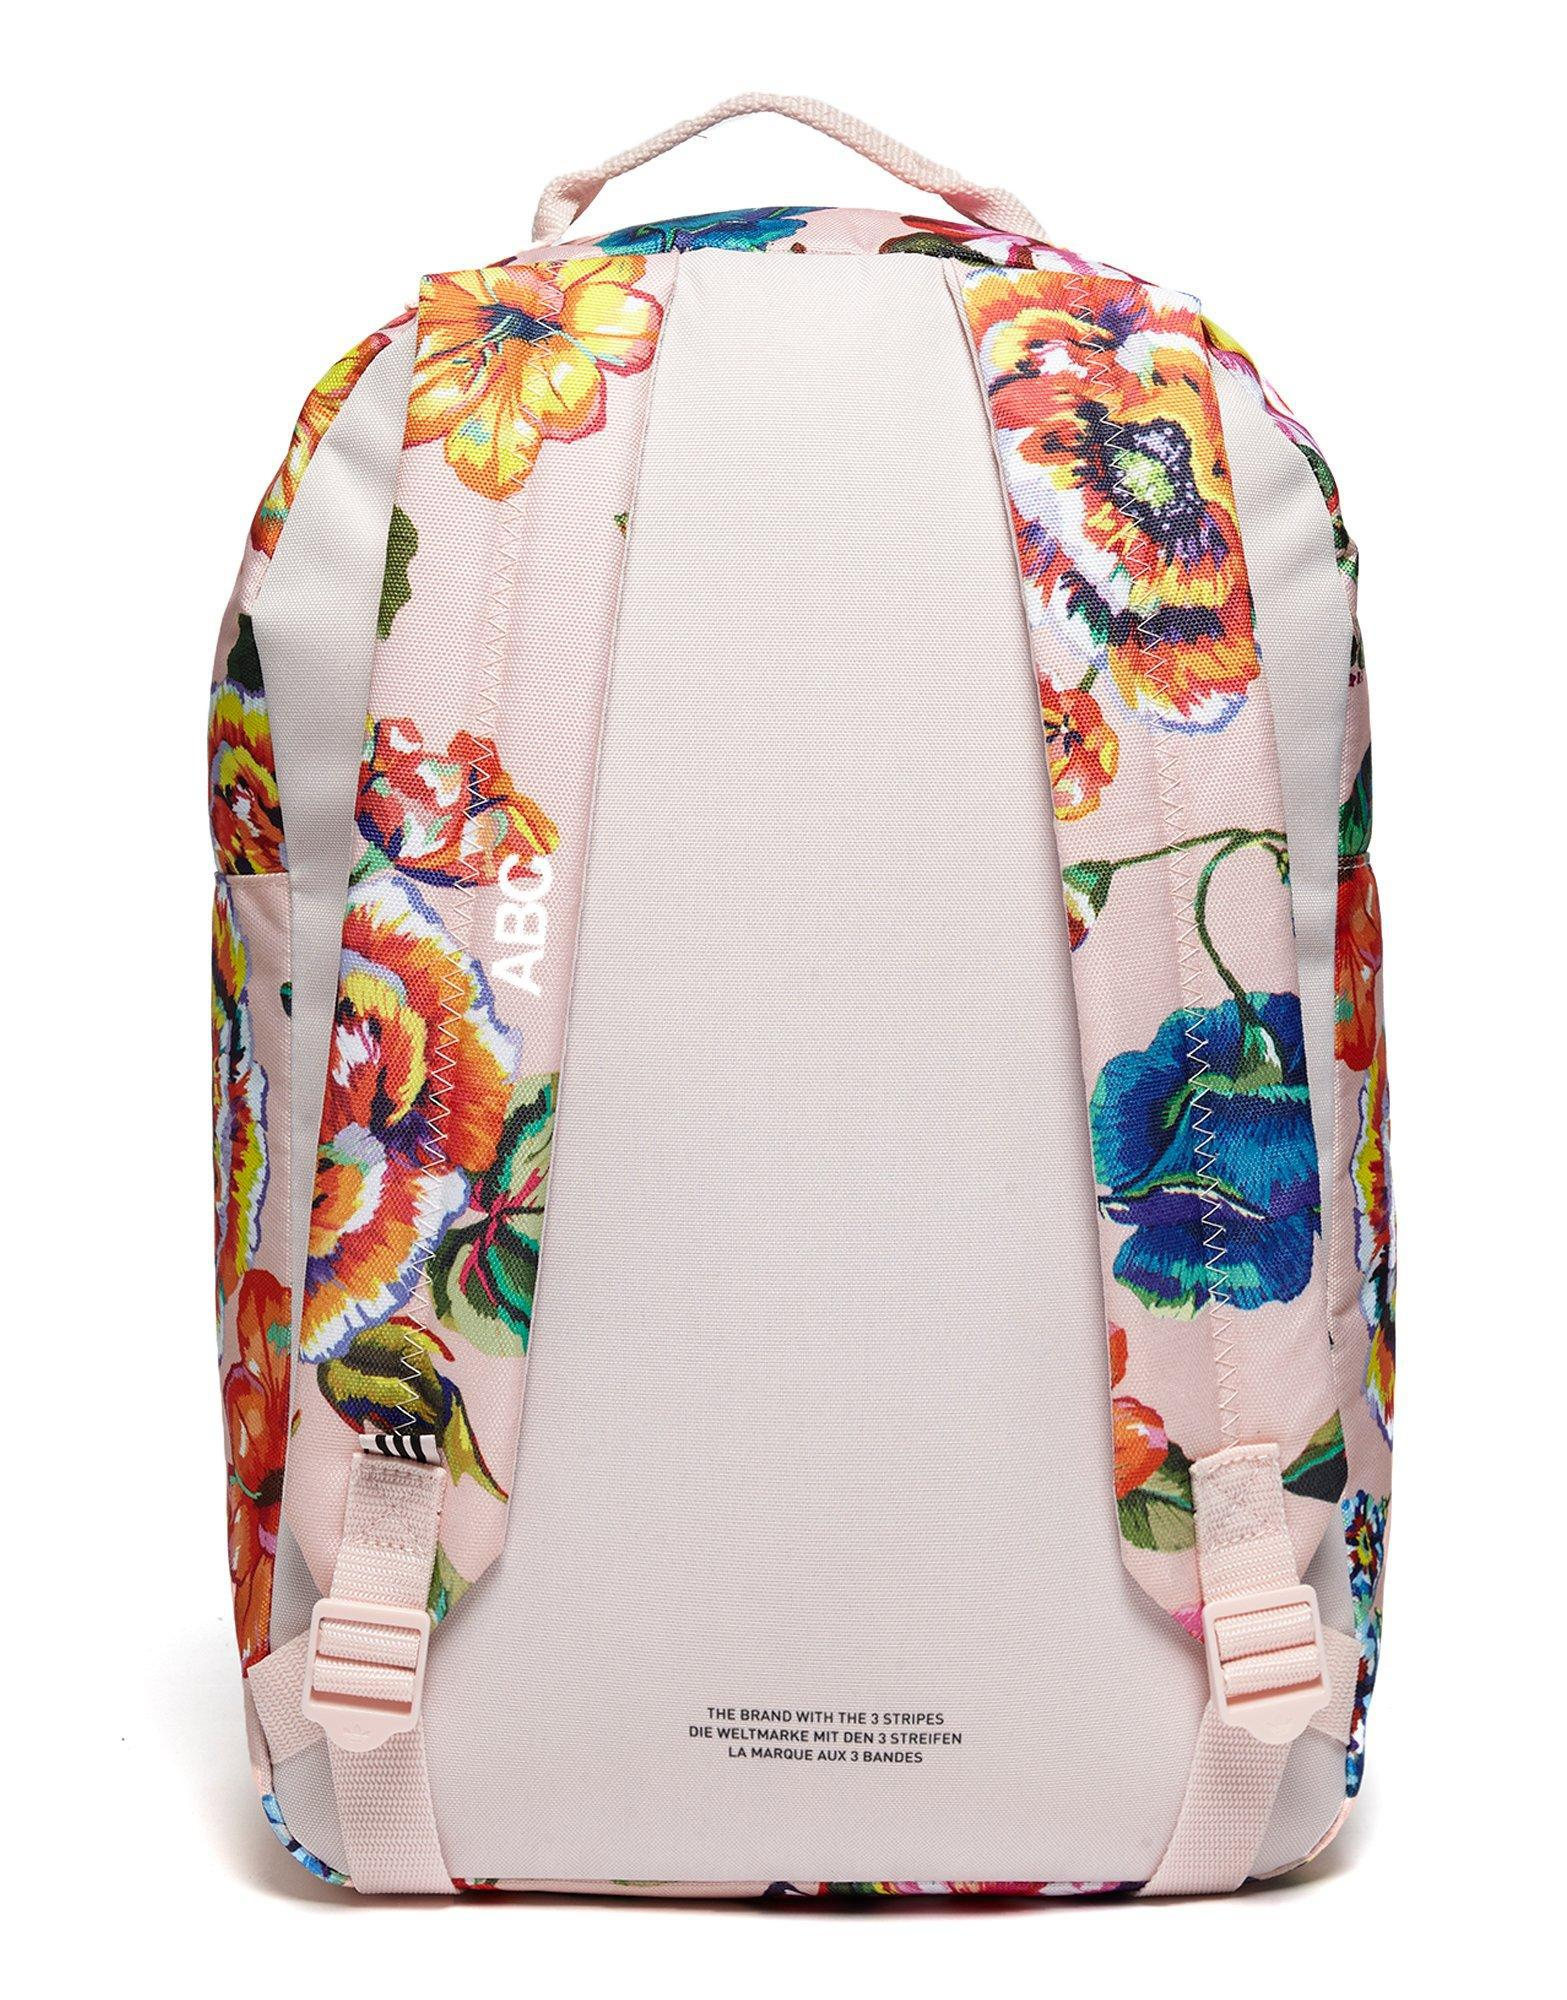 47fca7b66a adidas Originals Farm Floralita Backpack in White - Lyst